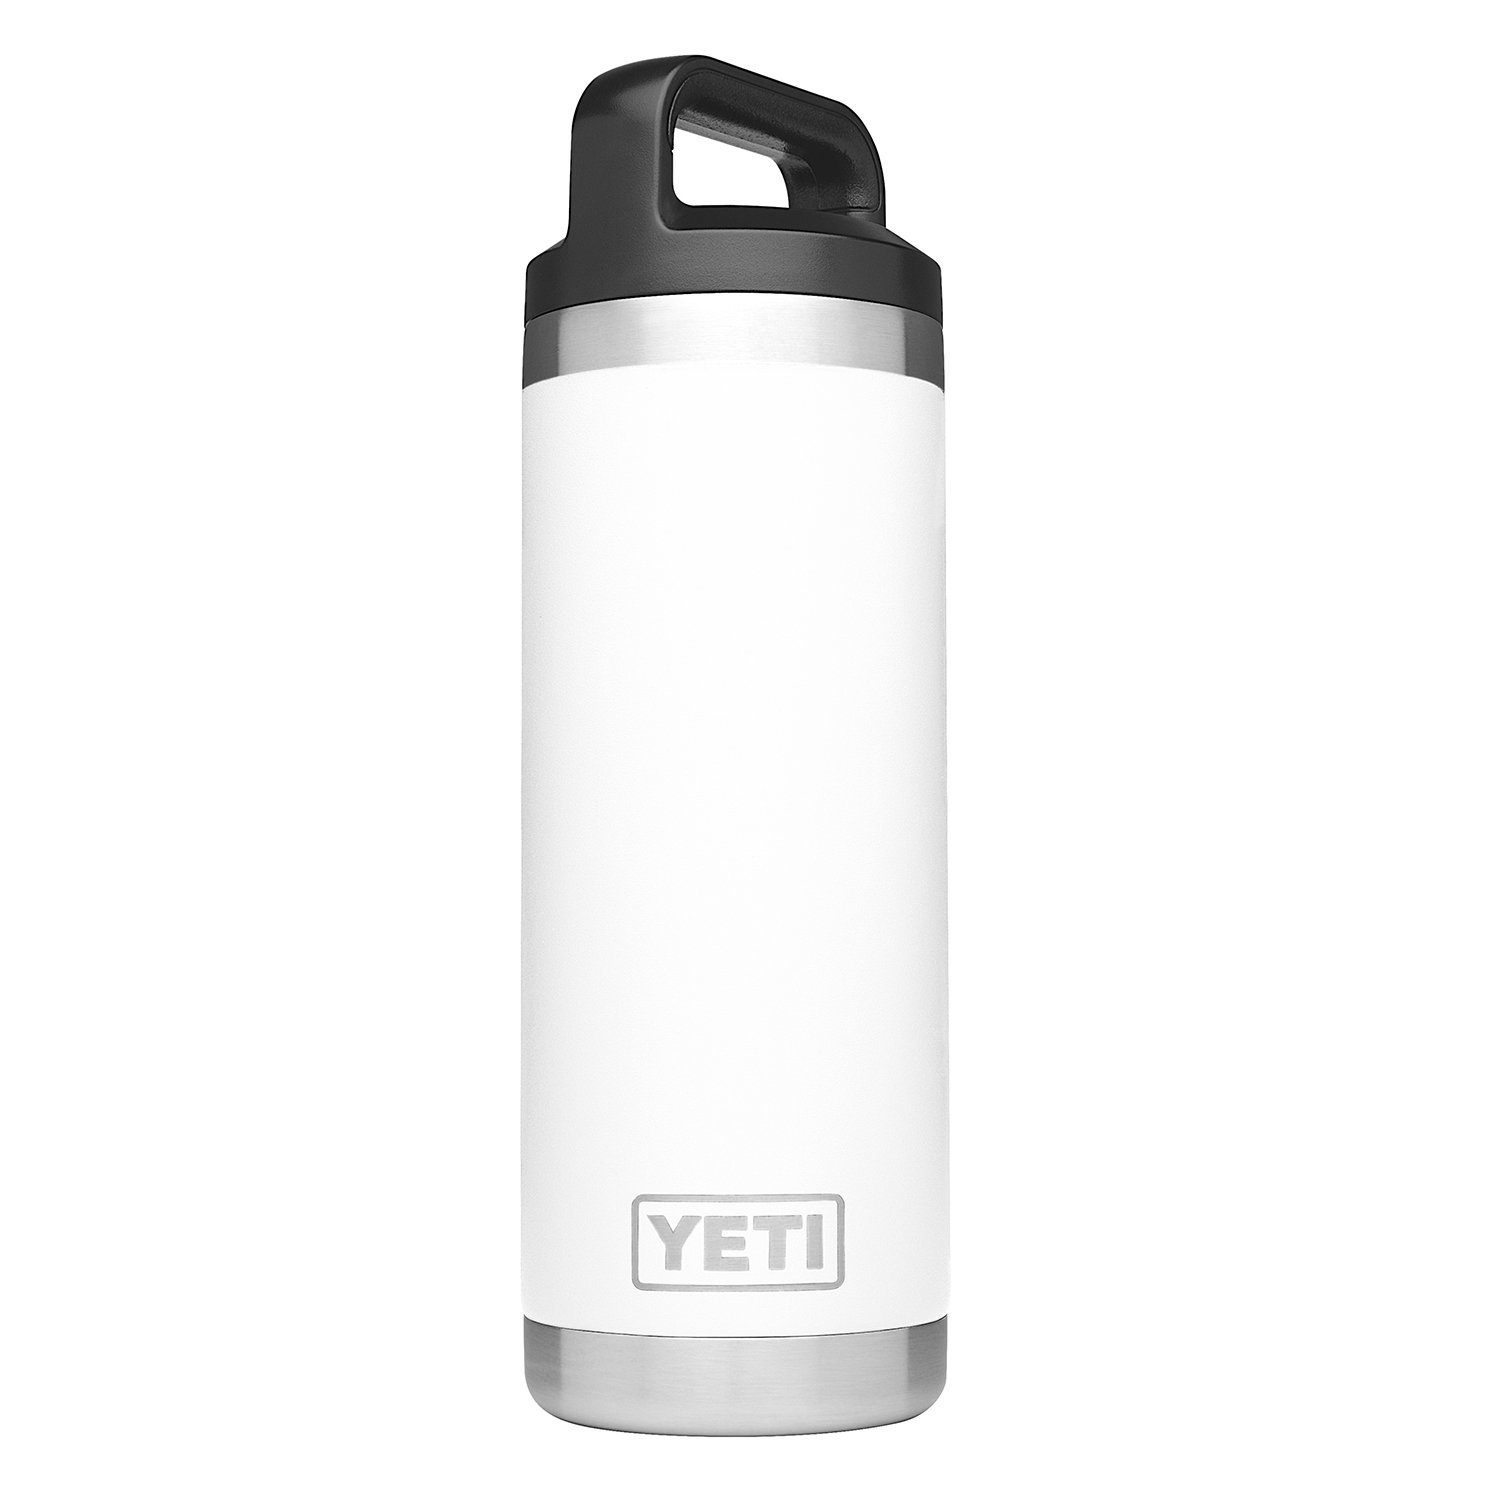 YETI Rambler 18oz Bottle, White